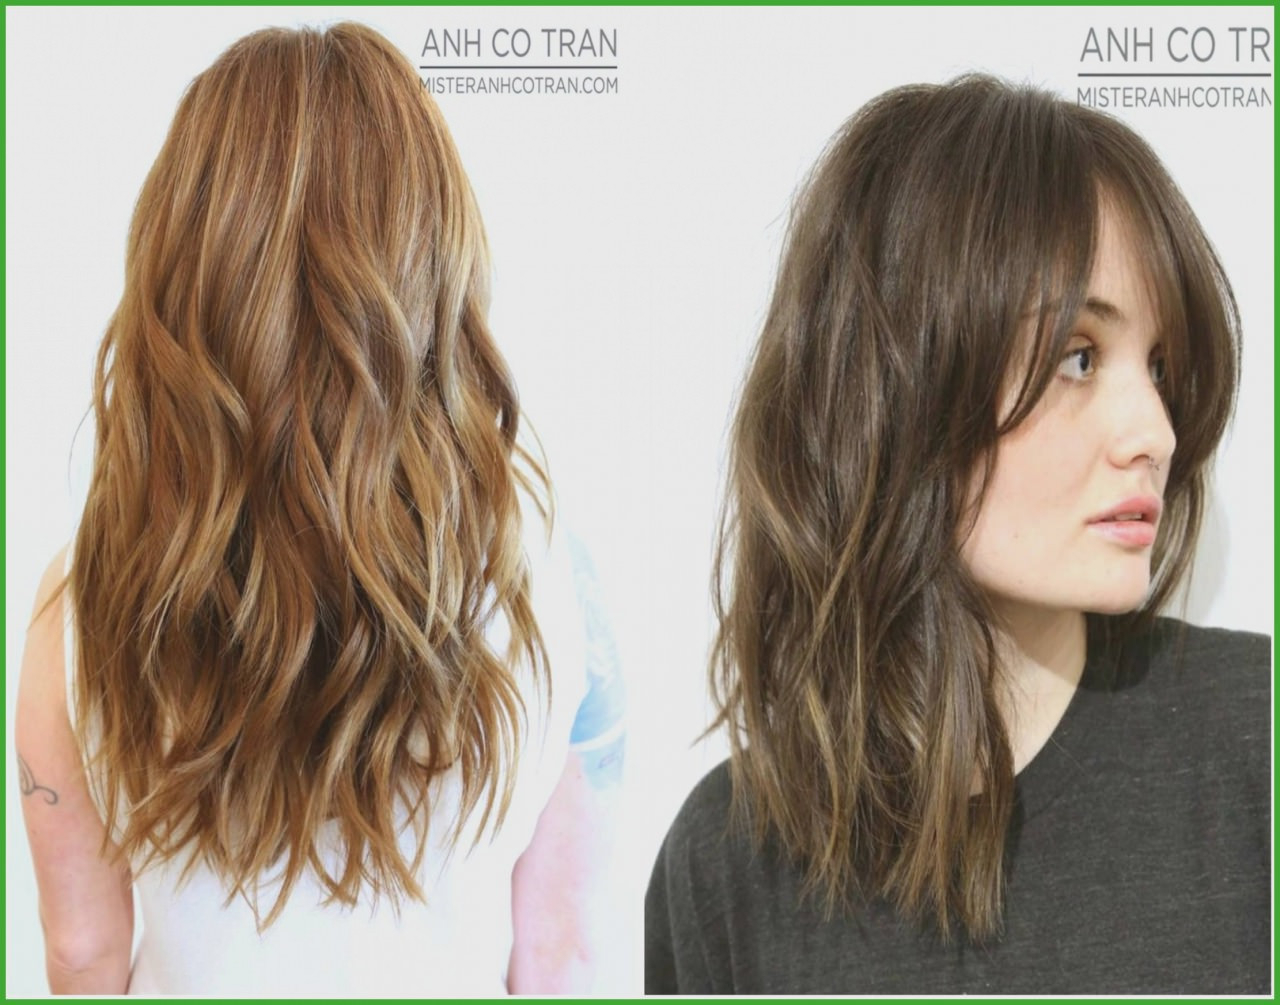 Favorite Shoulder Length Shag Haircuts With Babylights Inside 88 Medium Length Hairstyles With Bangs And Highlights (View 12 of 20)